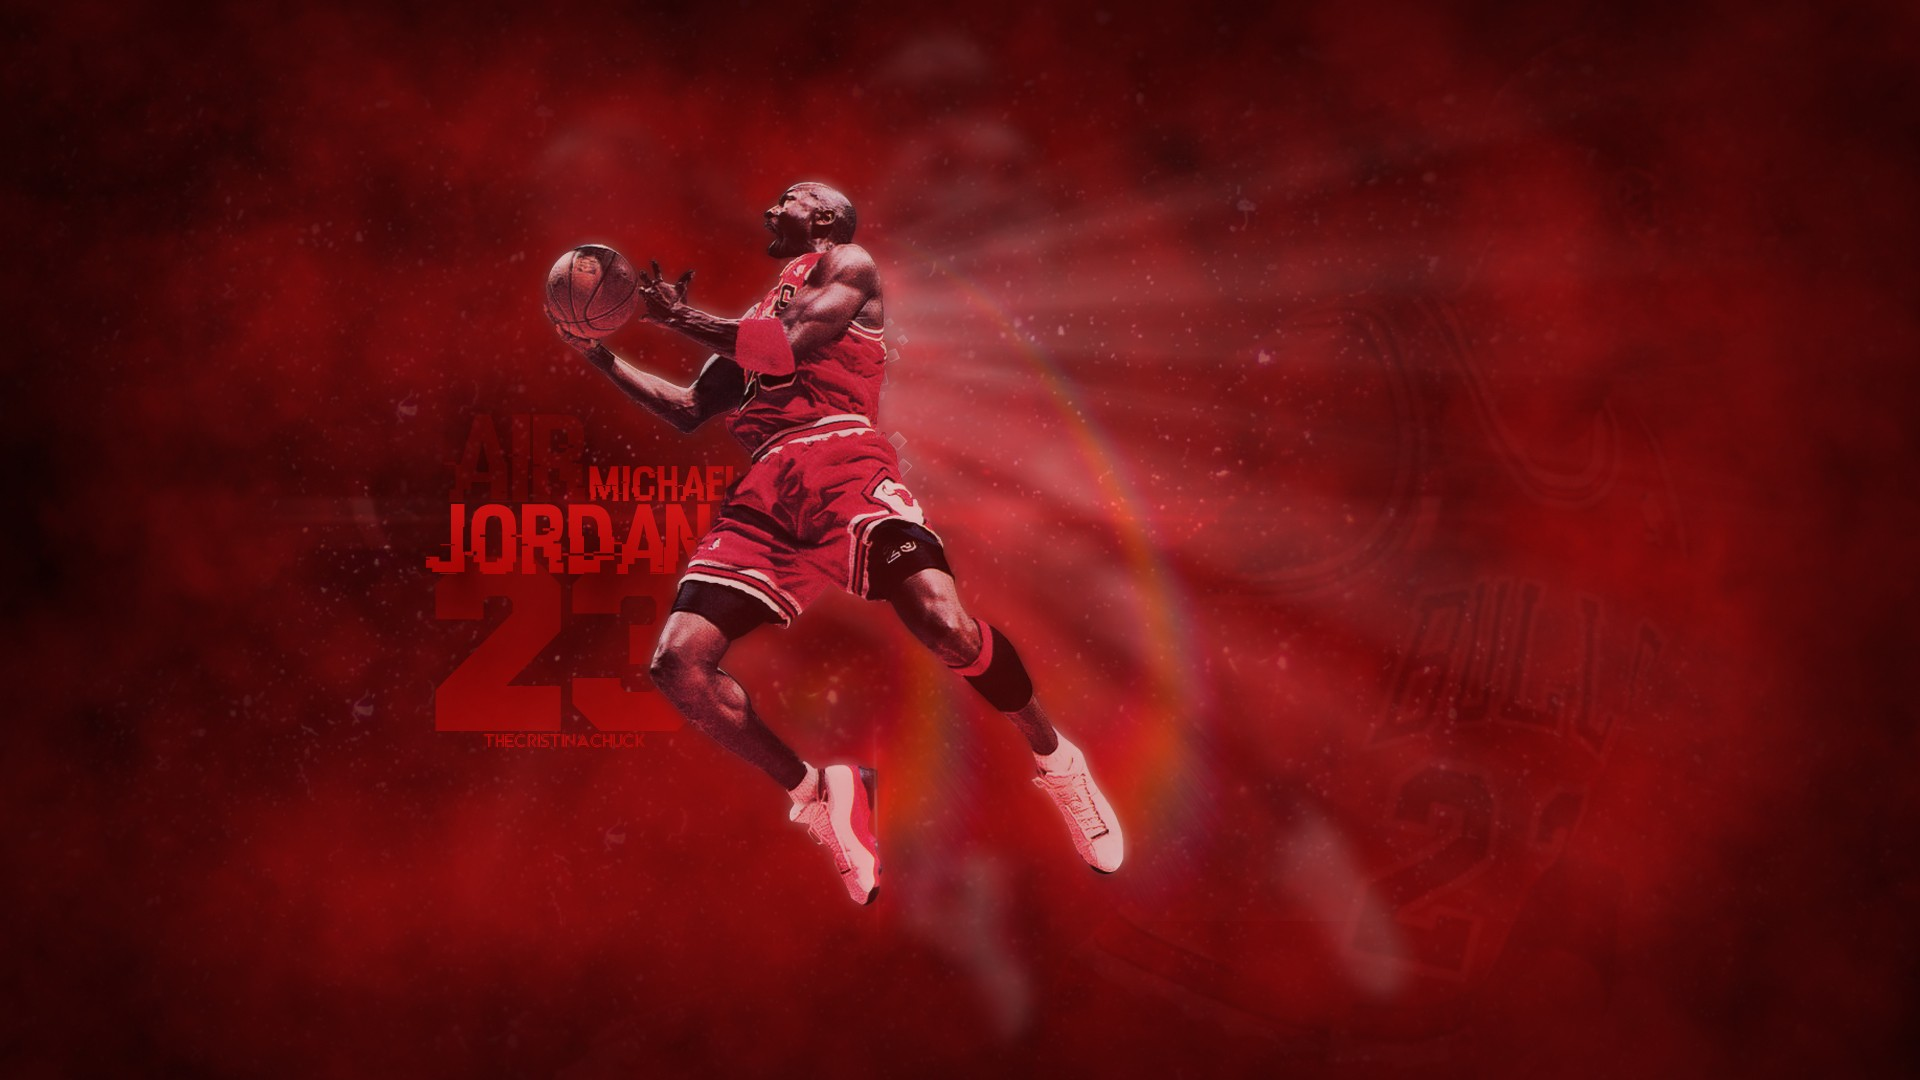 best sell best cheap best supplier Jordan Wallpaper Hd Android | Best Funny Images